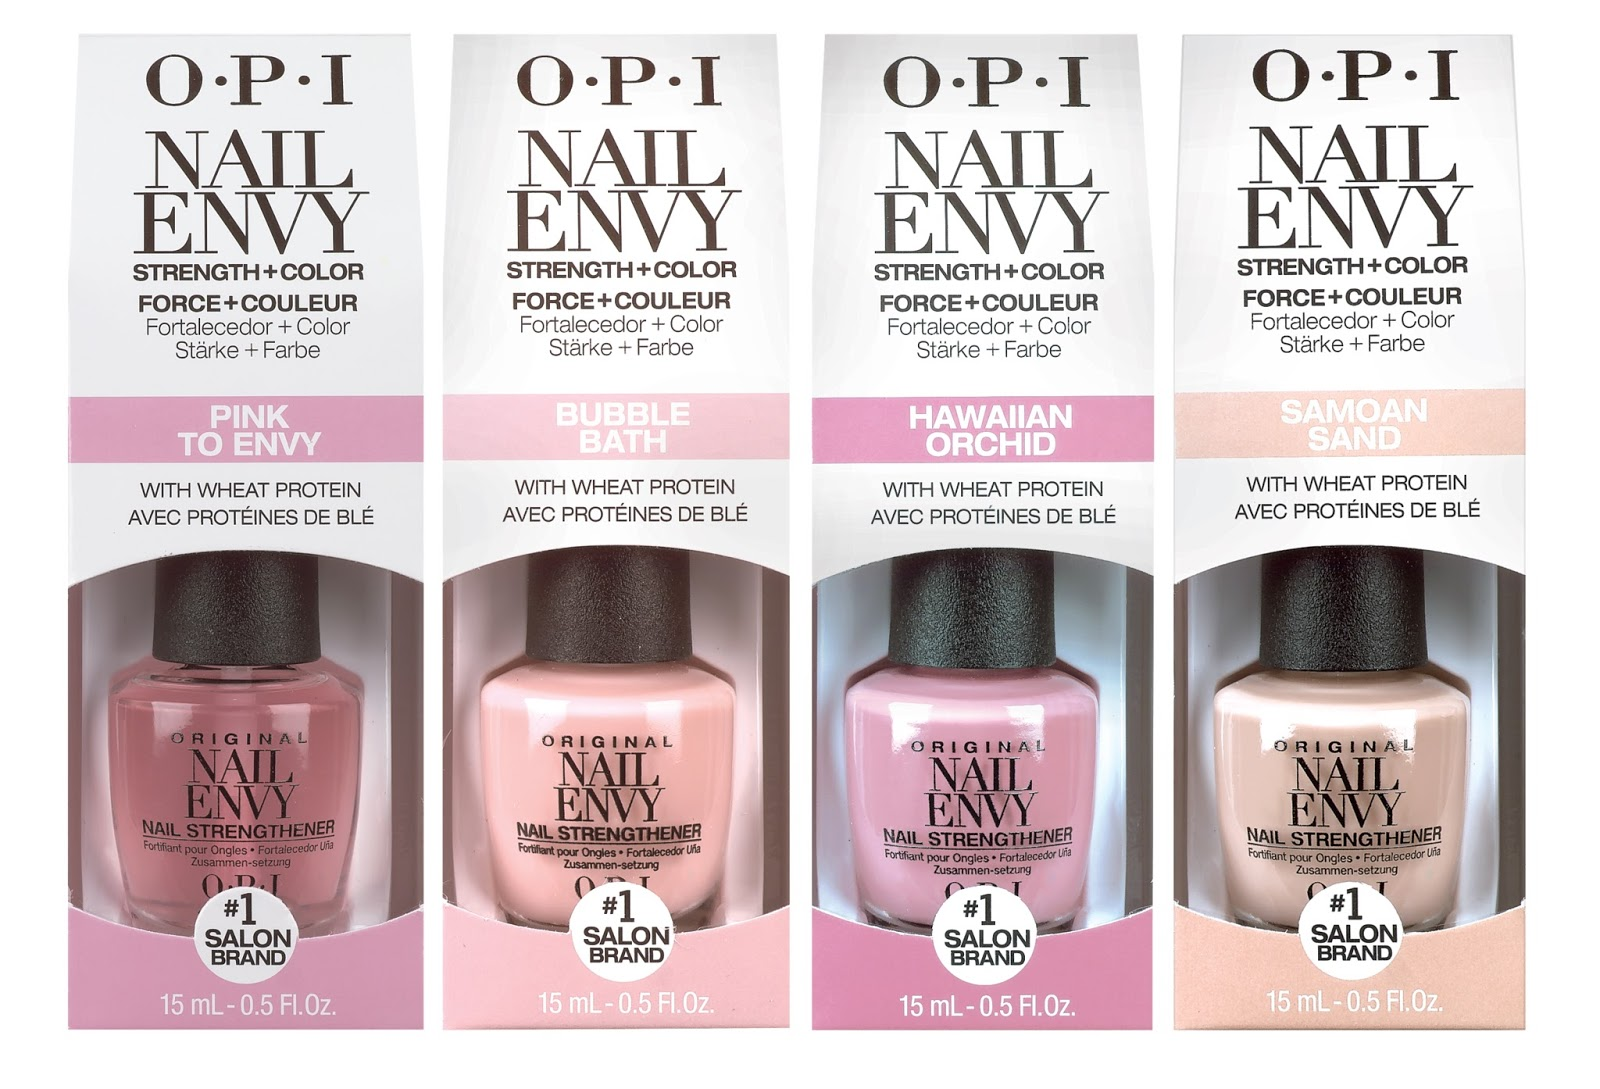 Never Enough Nails: OPI Nail Envy, now in color!!!